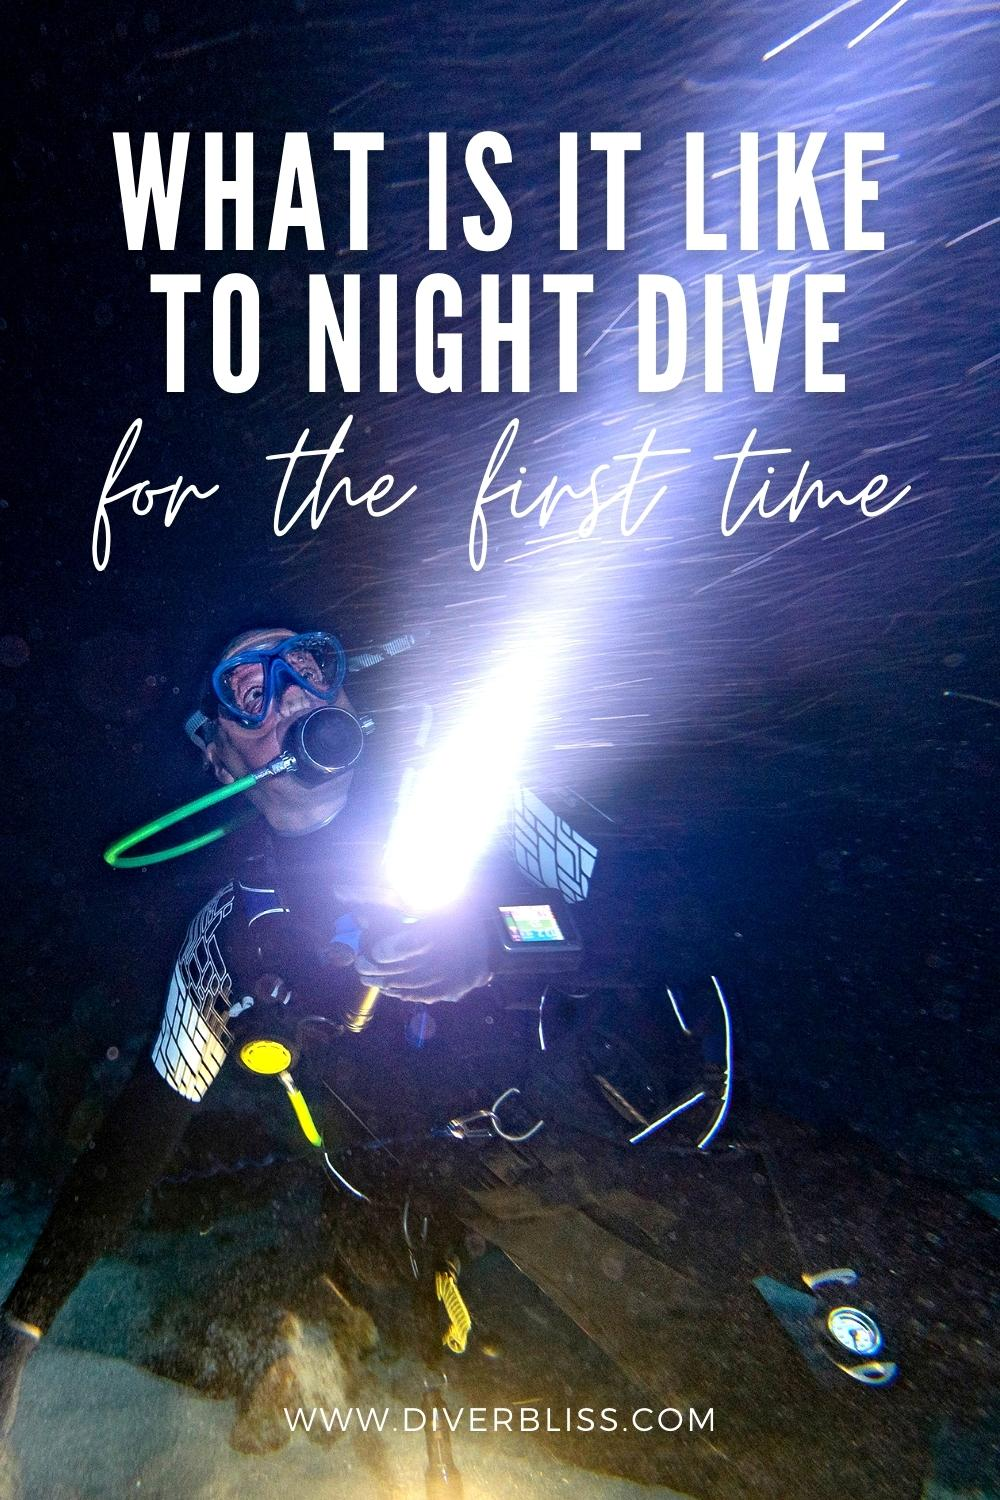 what is it like to night dive for the first time